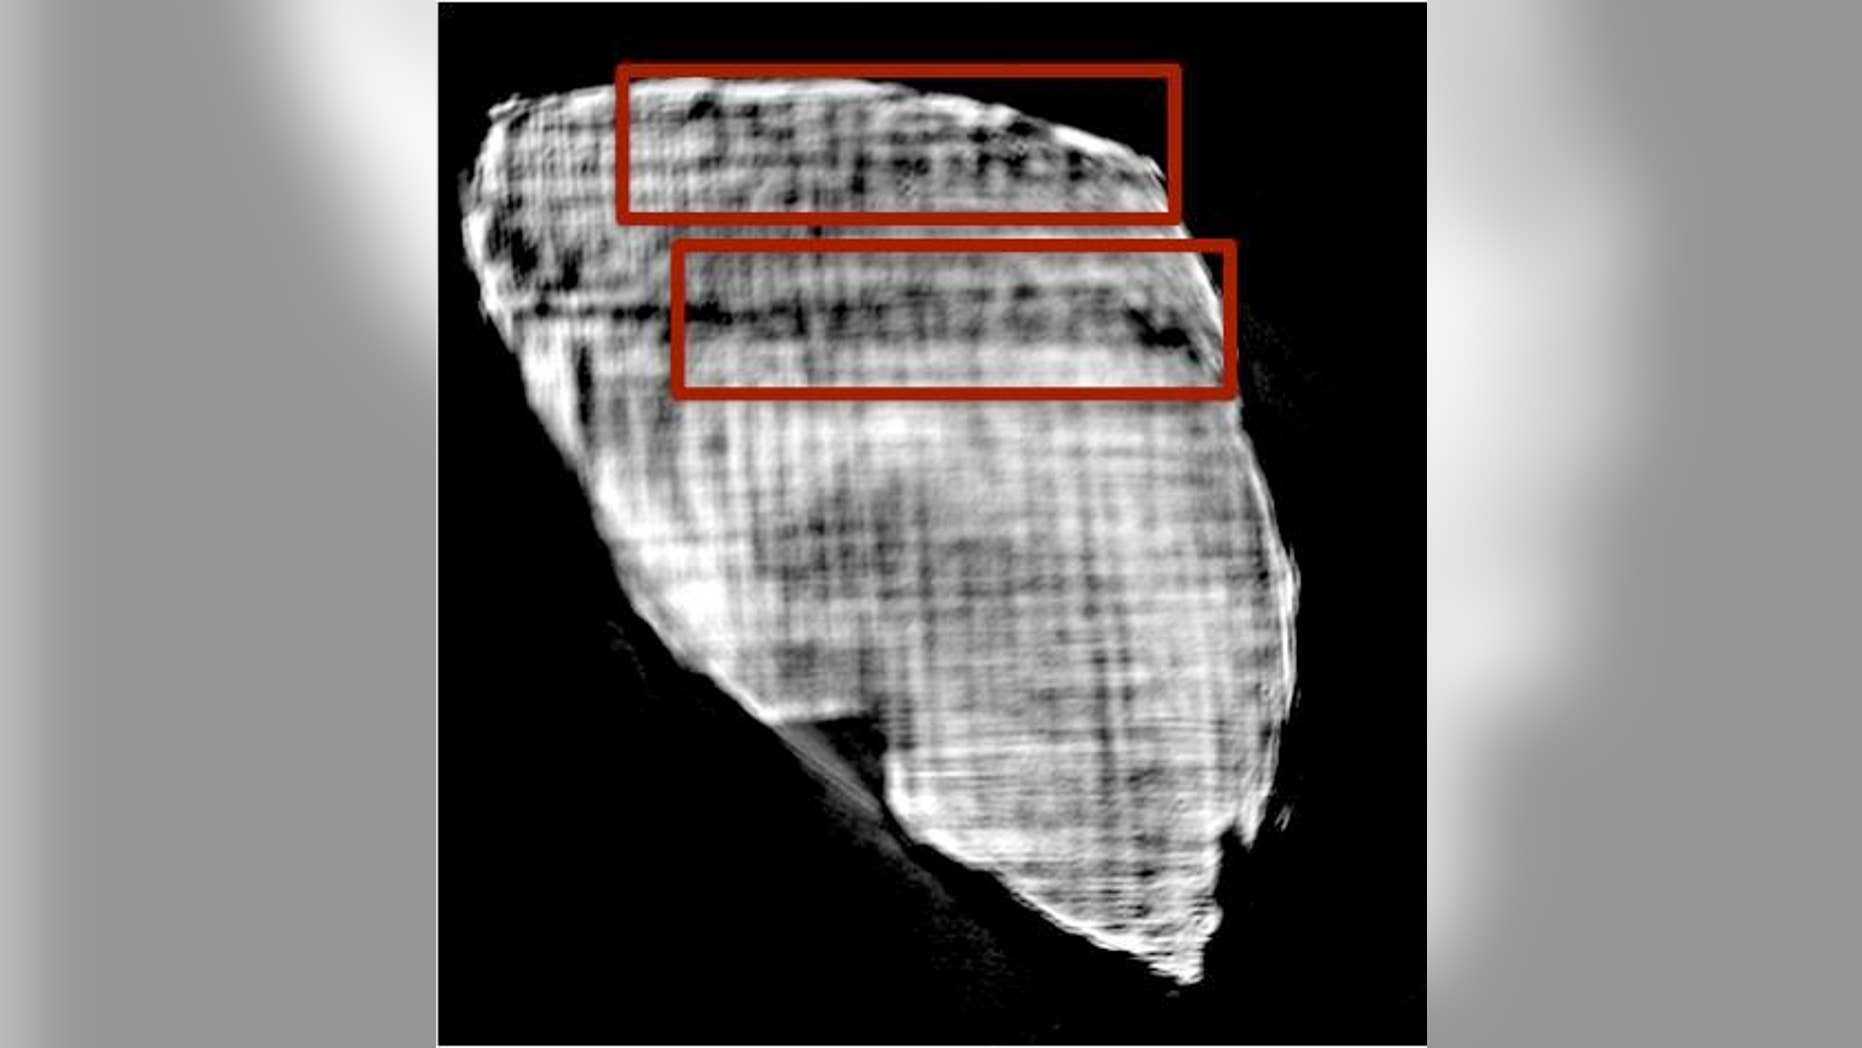 Hundreds of rolled, charred papyrus scrolls that were buried in ash in Herculaneum after the eruption of Mount Vesuvius in A.D. 79 could finally be read, thanks to a new technique that uses X-ray tomography. Here, letters from one of the interi